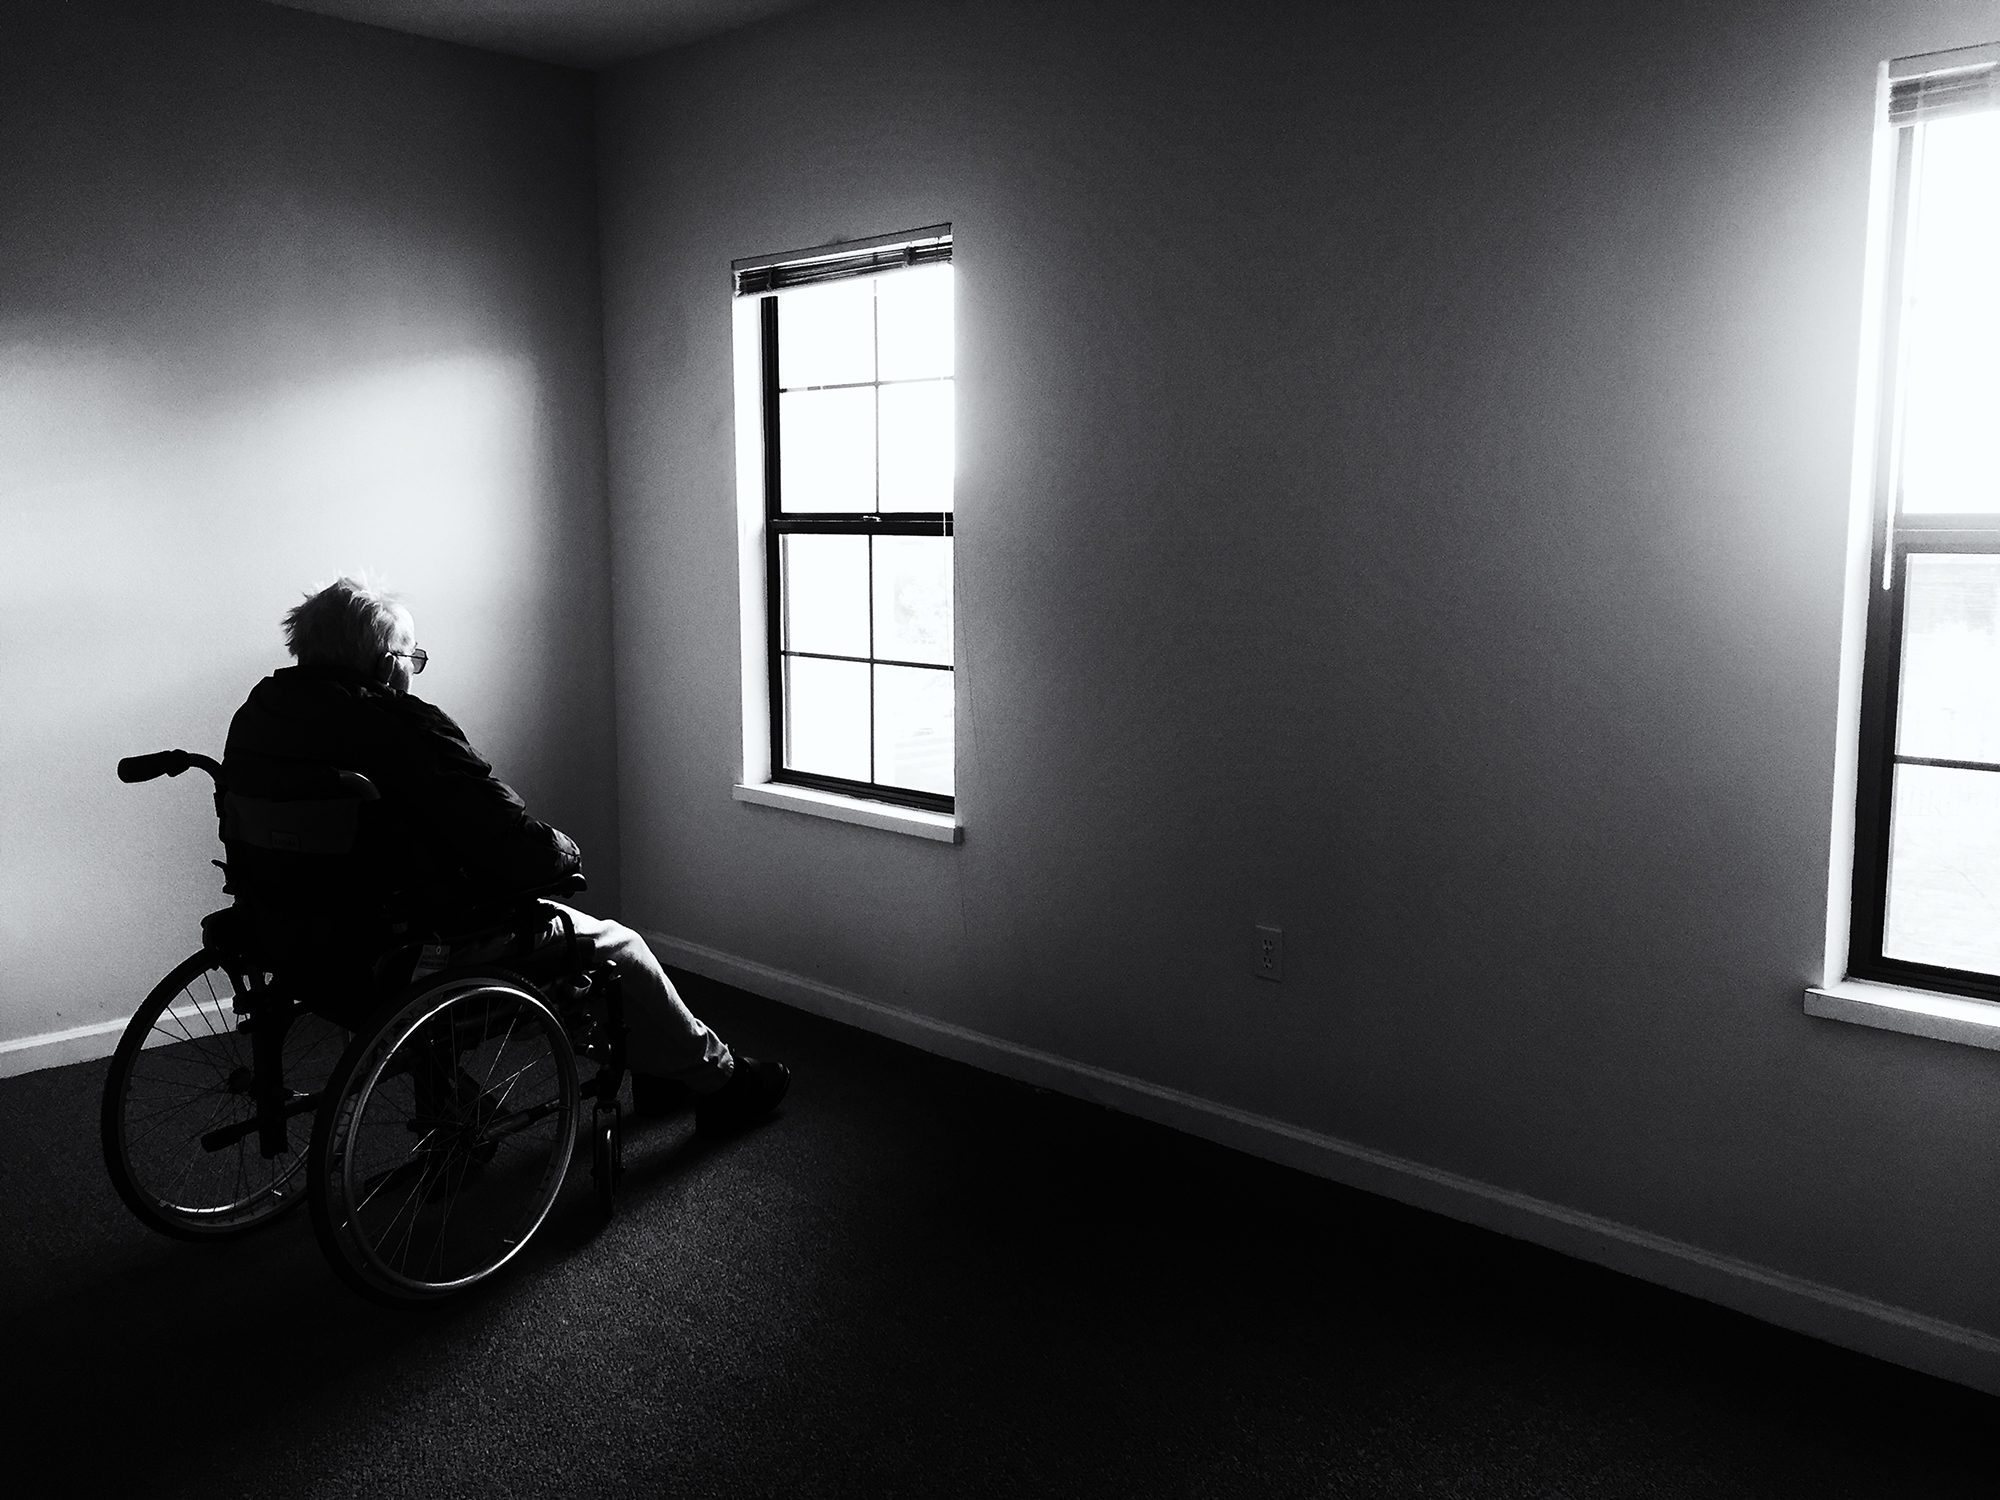 Assisted Living Move-In. Tucson, Arizona, 2016